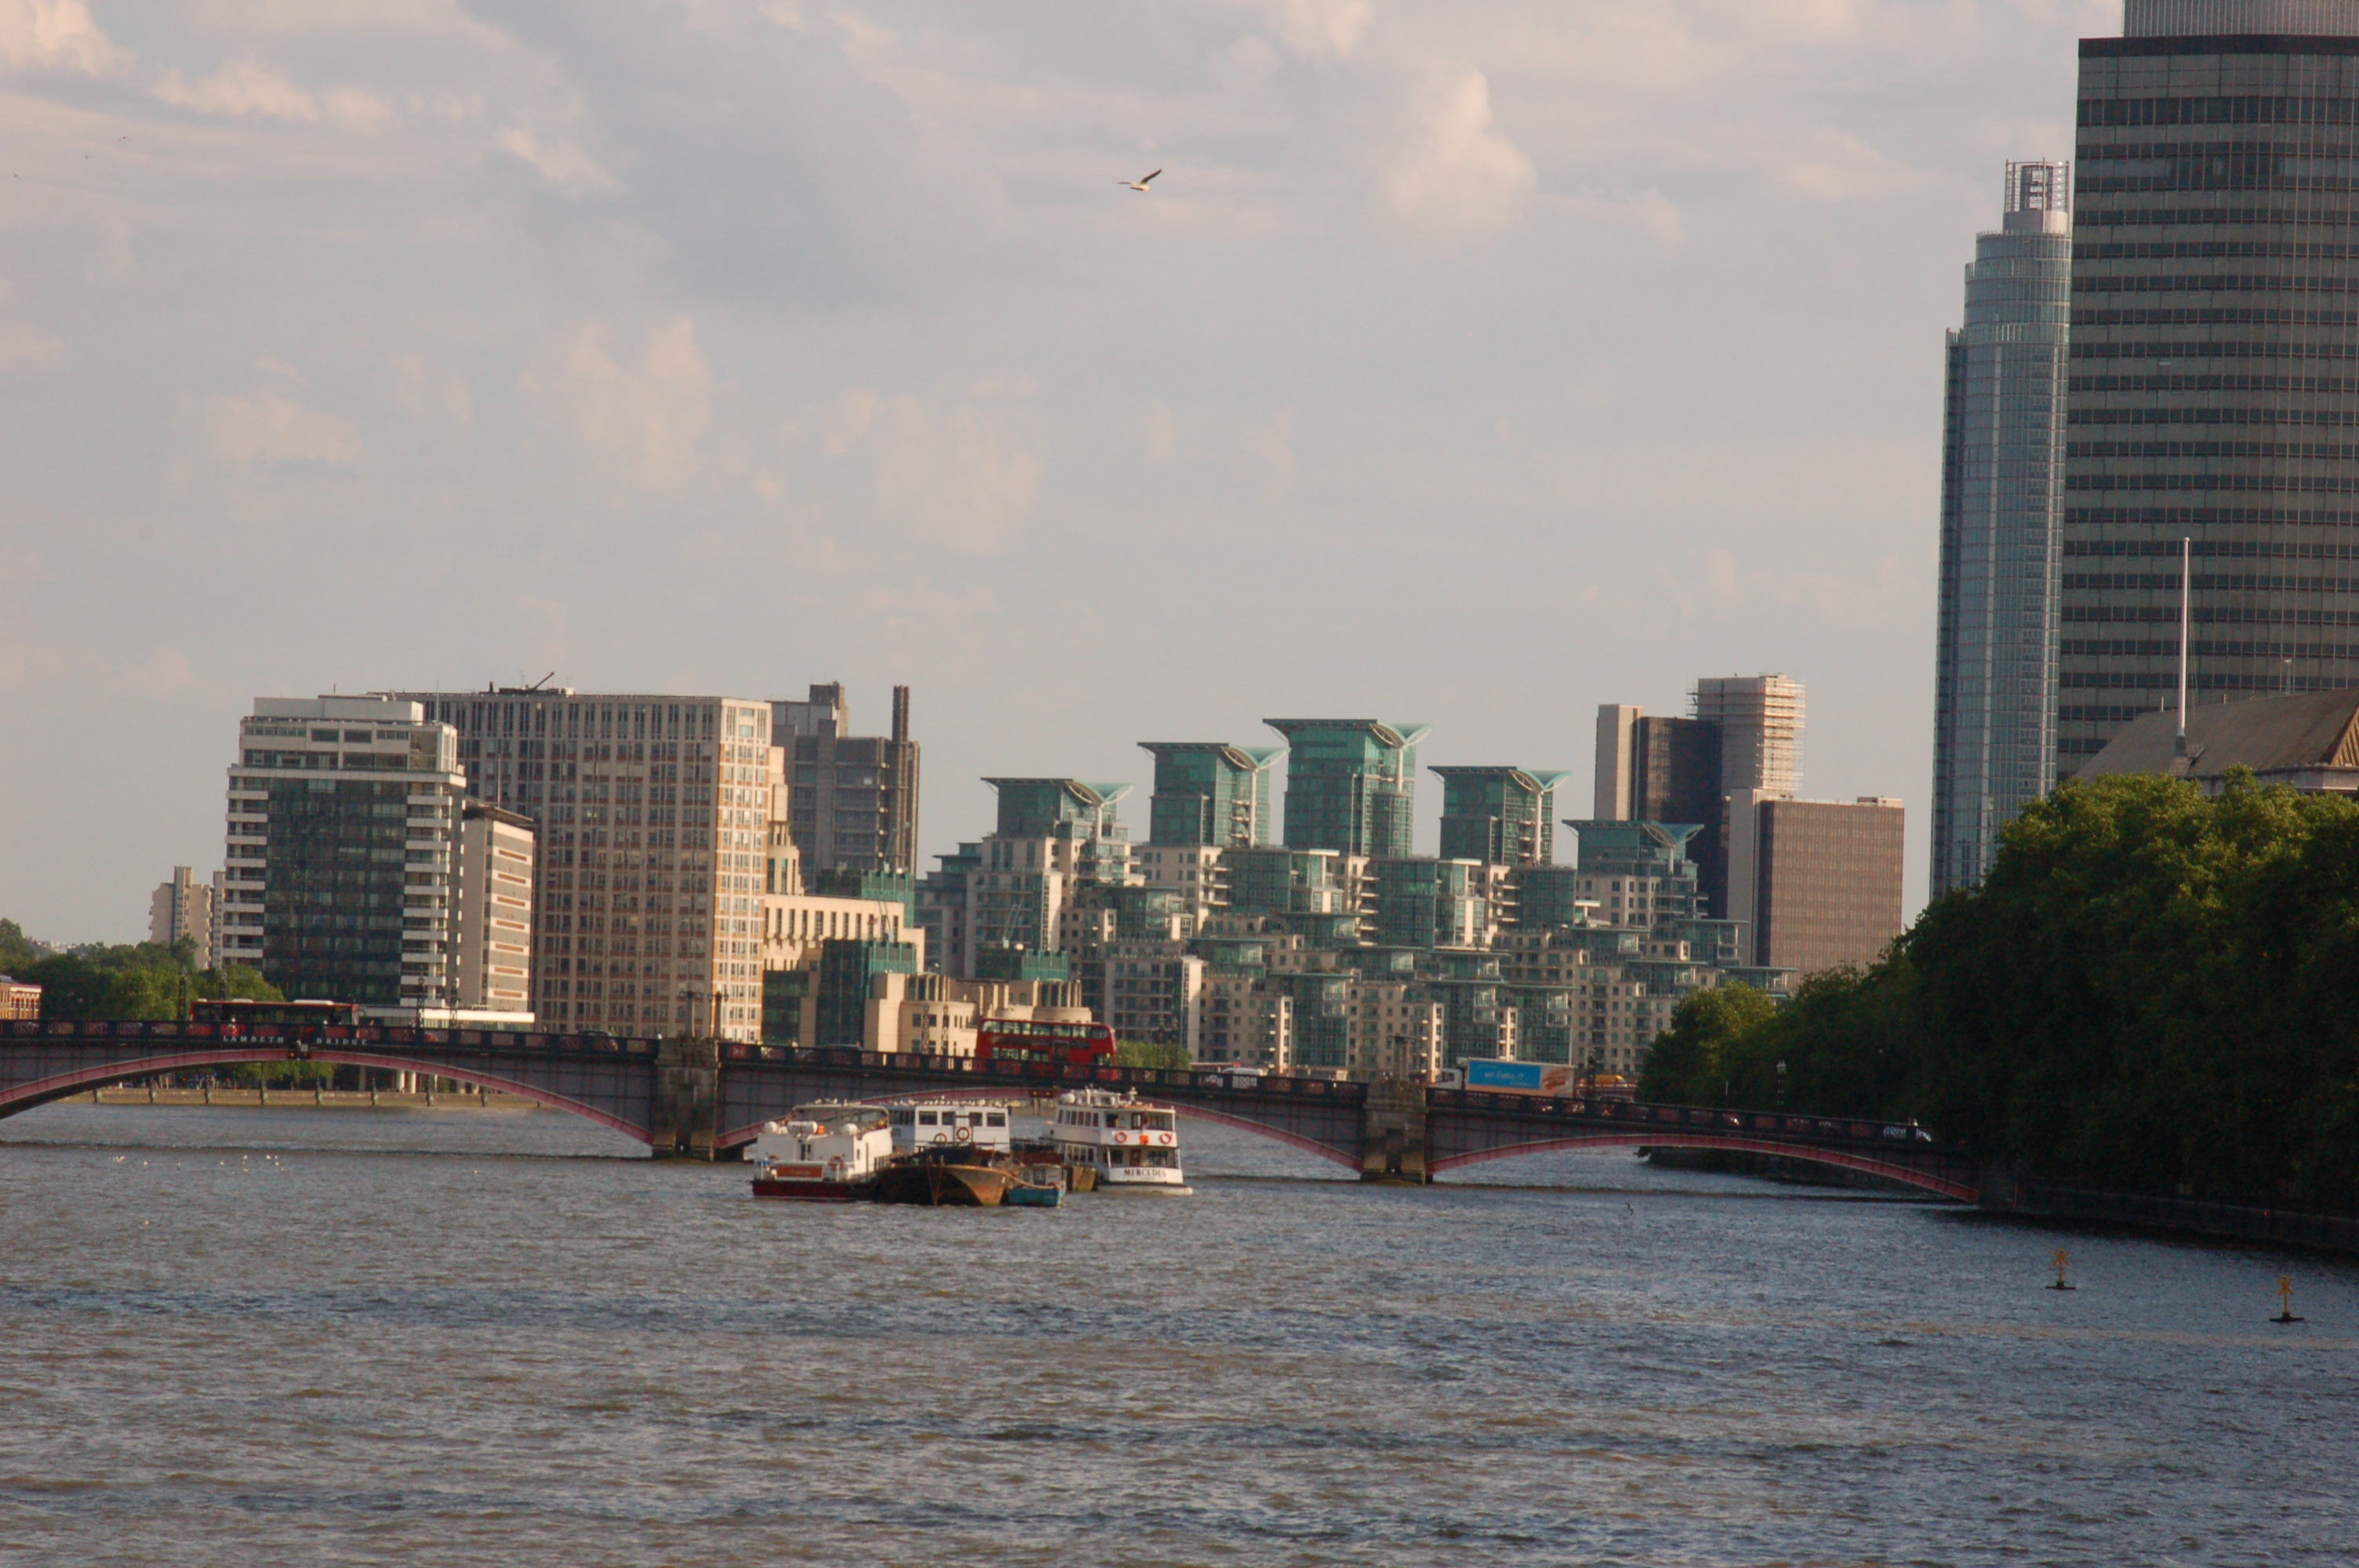 Looking South on the Thames River